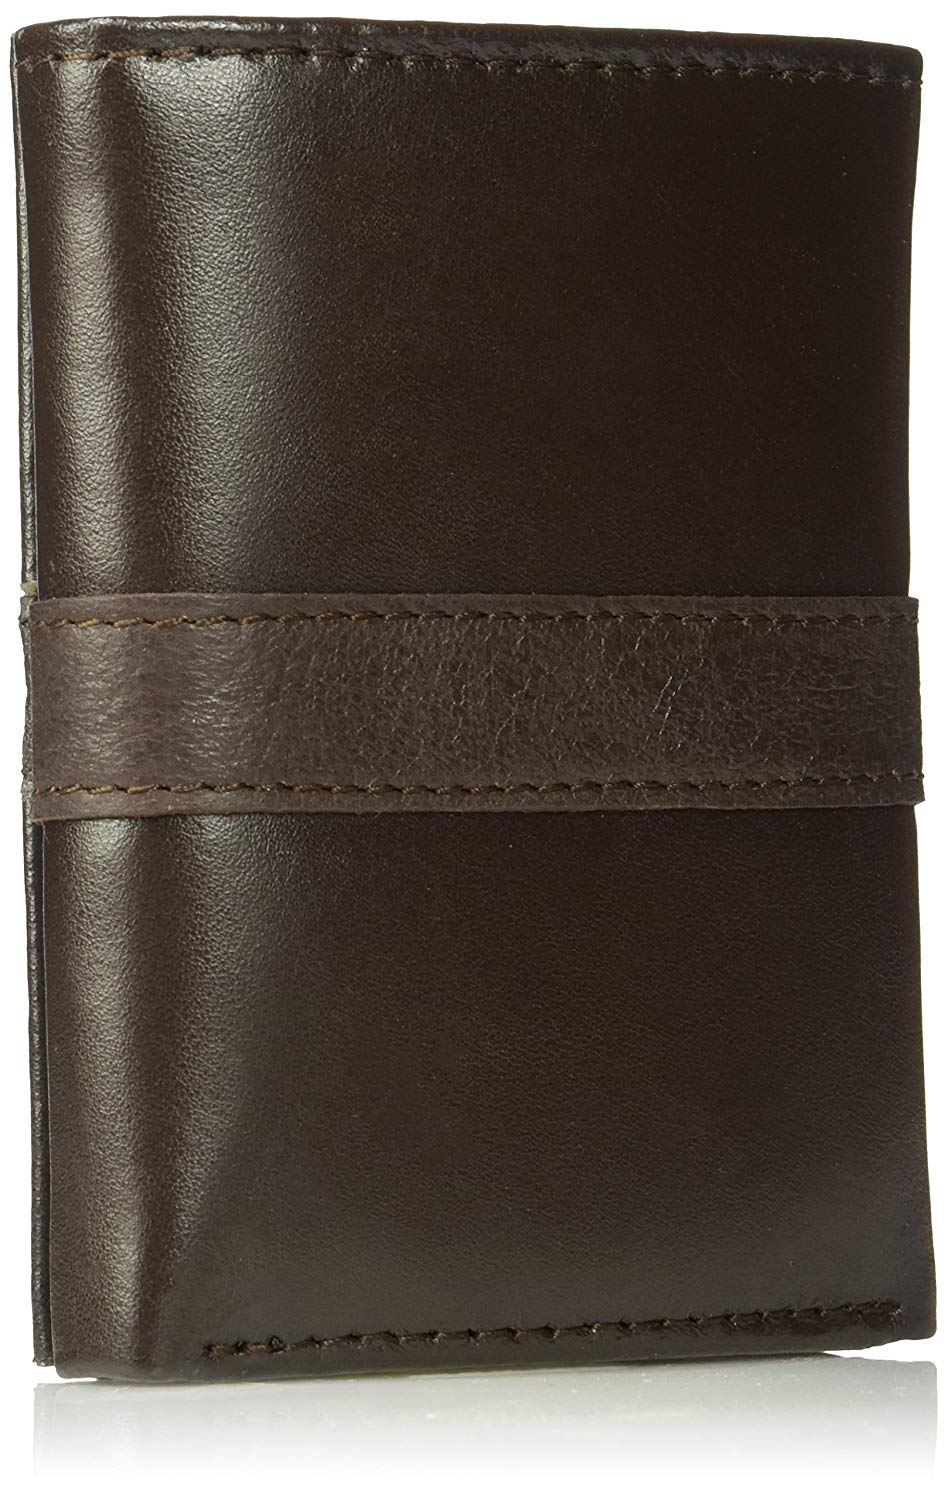 Tommy-Hilfiger-Men-039-s-RFID-Blocking-Leather-Ranger-Extra-Capacity-Trifold-Wallet thumbnail 12